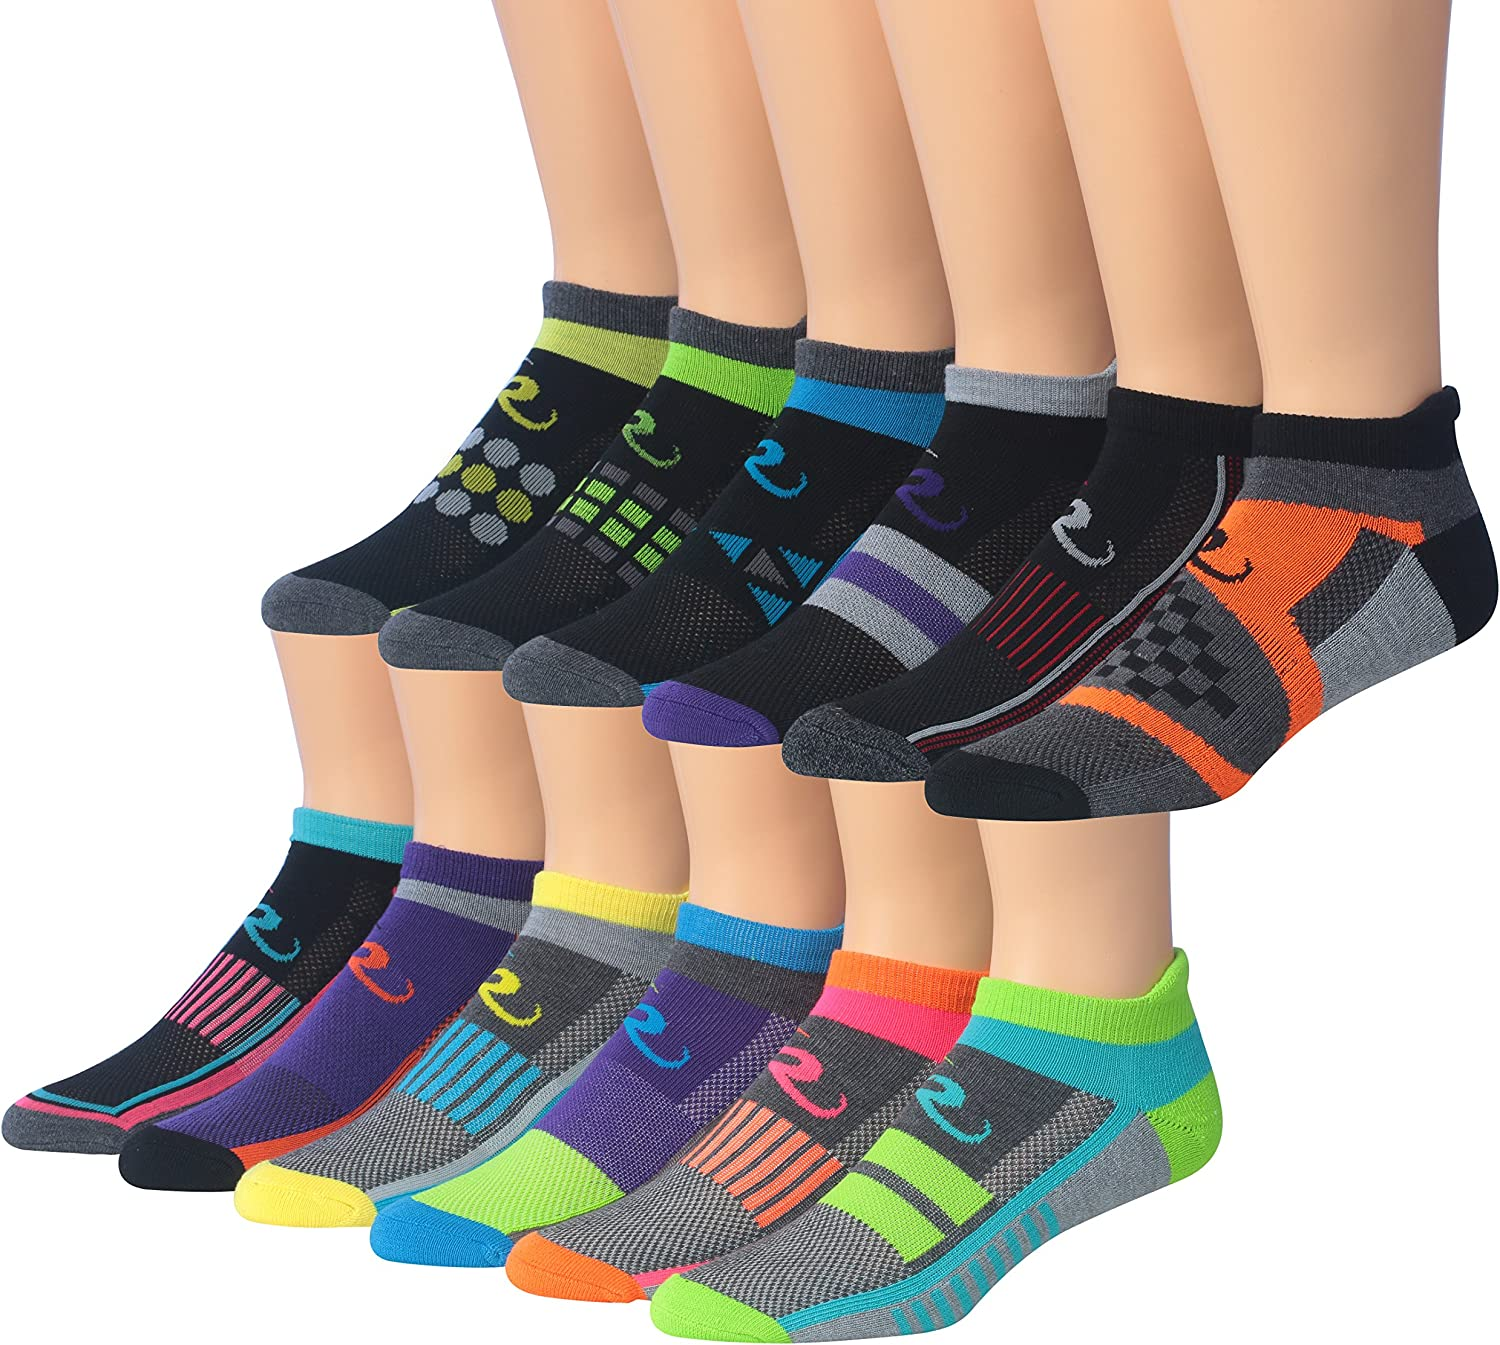 Ronnox Men's 12-Pairs Low Cut Running & Athletic Performance Tab Socks